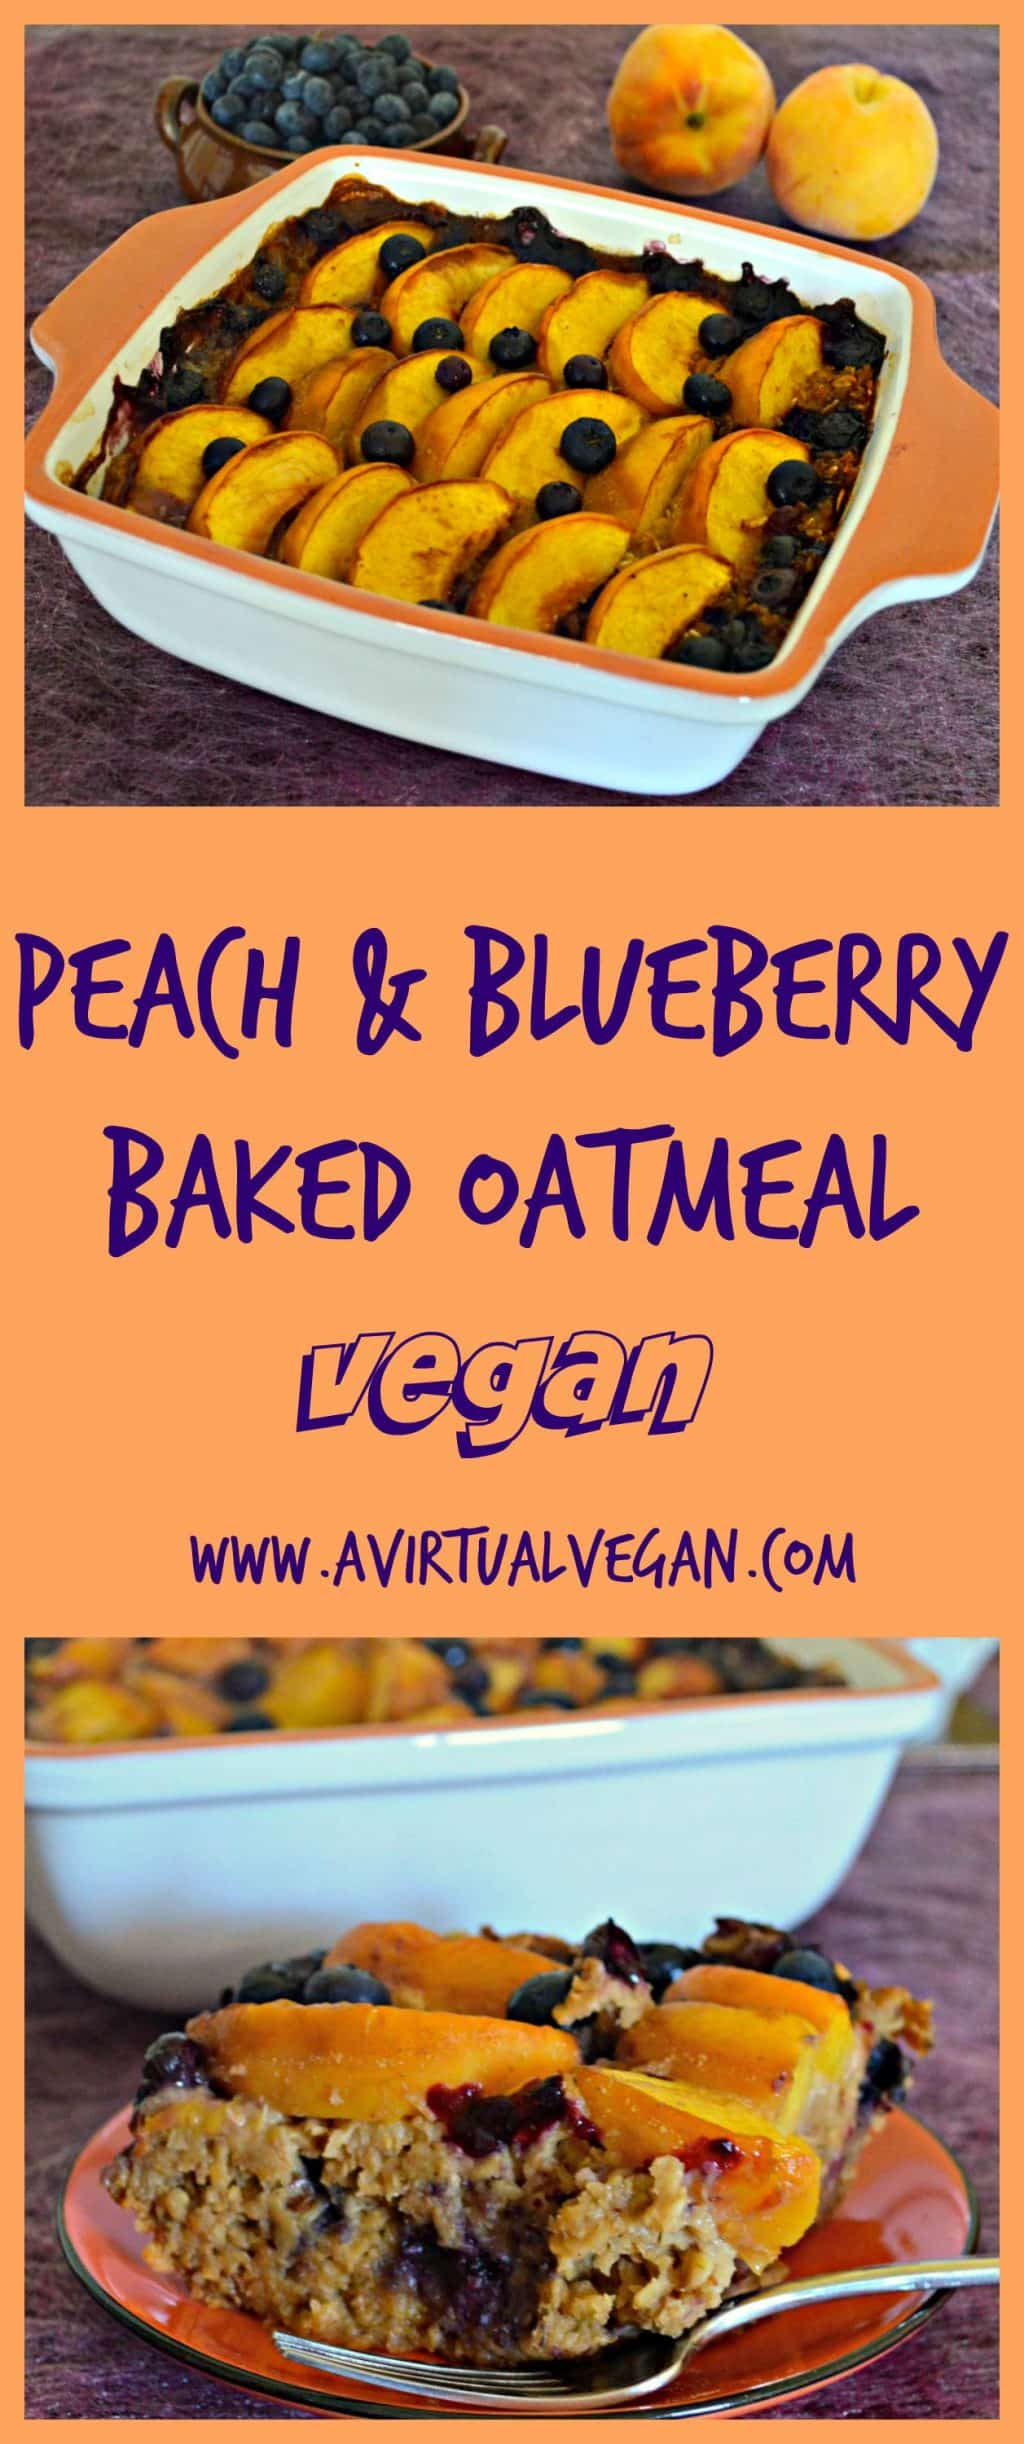 Sweet, juicy peaches and blueberries come together beautifully in this Peach Baked Oatmeal with Blueberries. A delicious & healthy breakfast.  #bakedoatmeal #breakfast #vegan